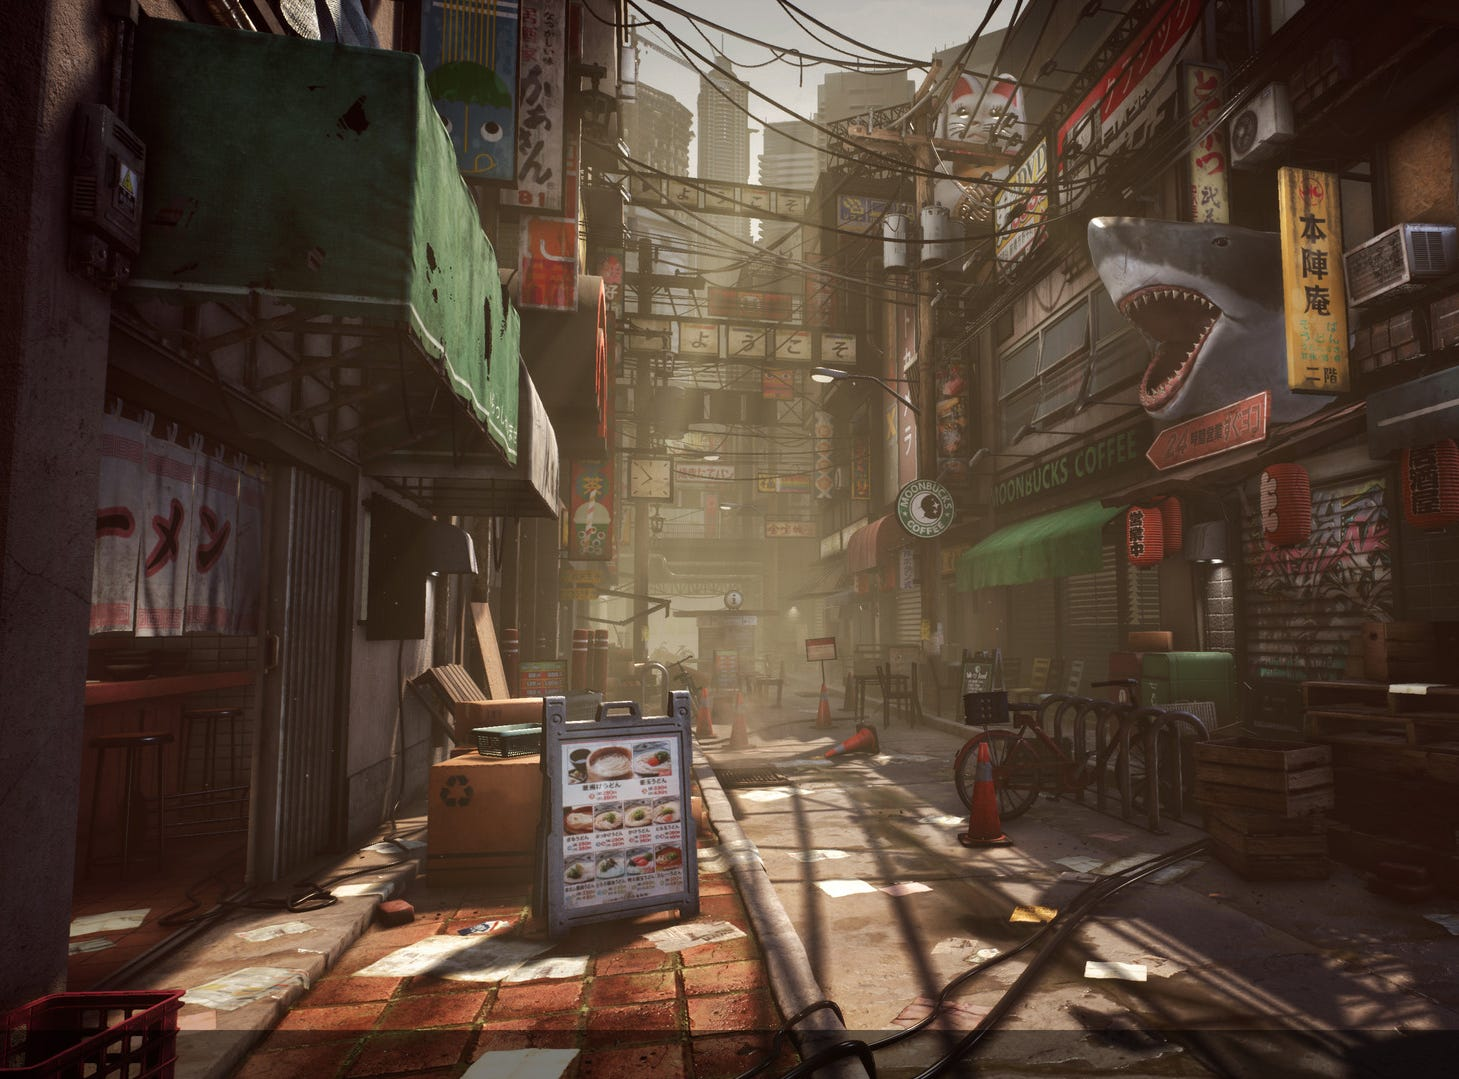 """Urban Street"" environment created by Michael Andreula, Game Art and Animation graduate of Champlain College. Andreula works at Vicarious Visions, in Albany."